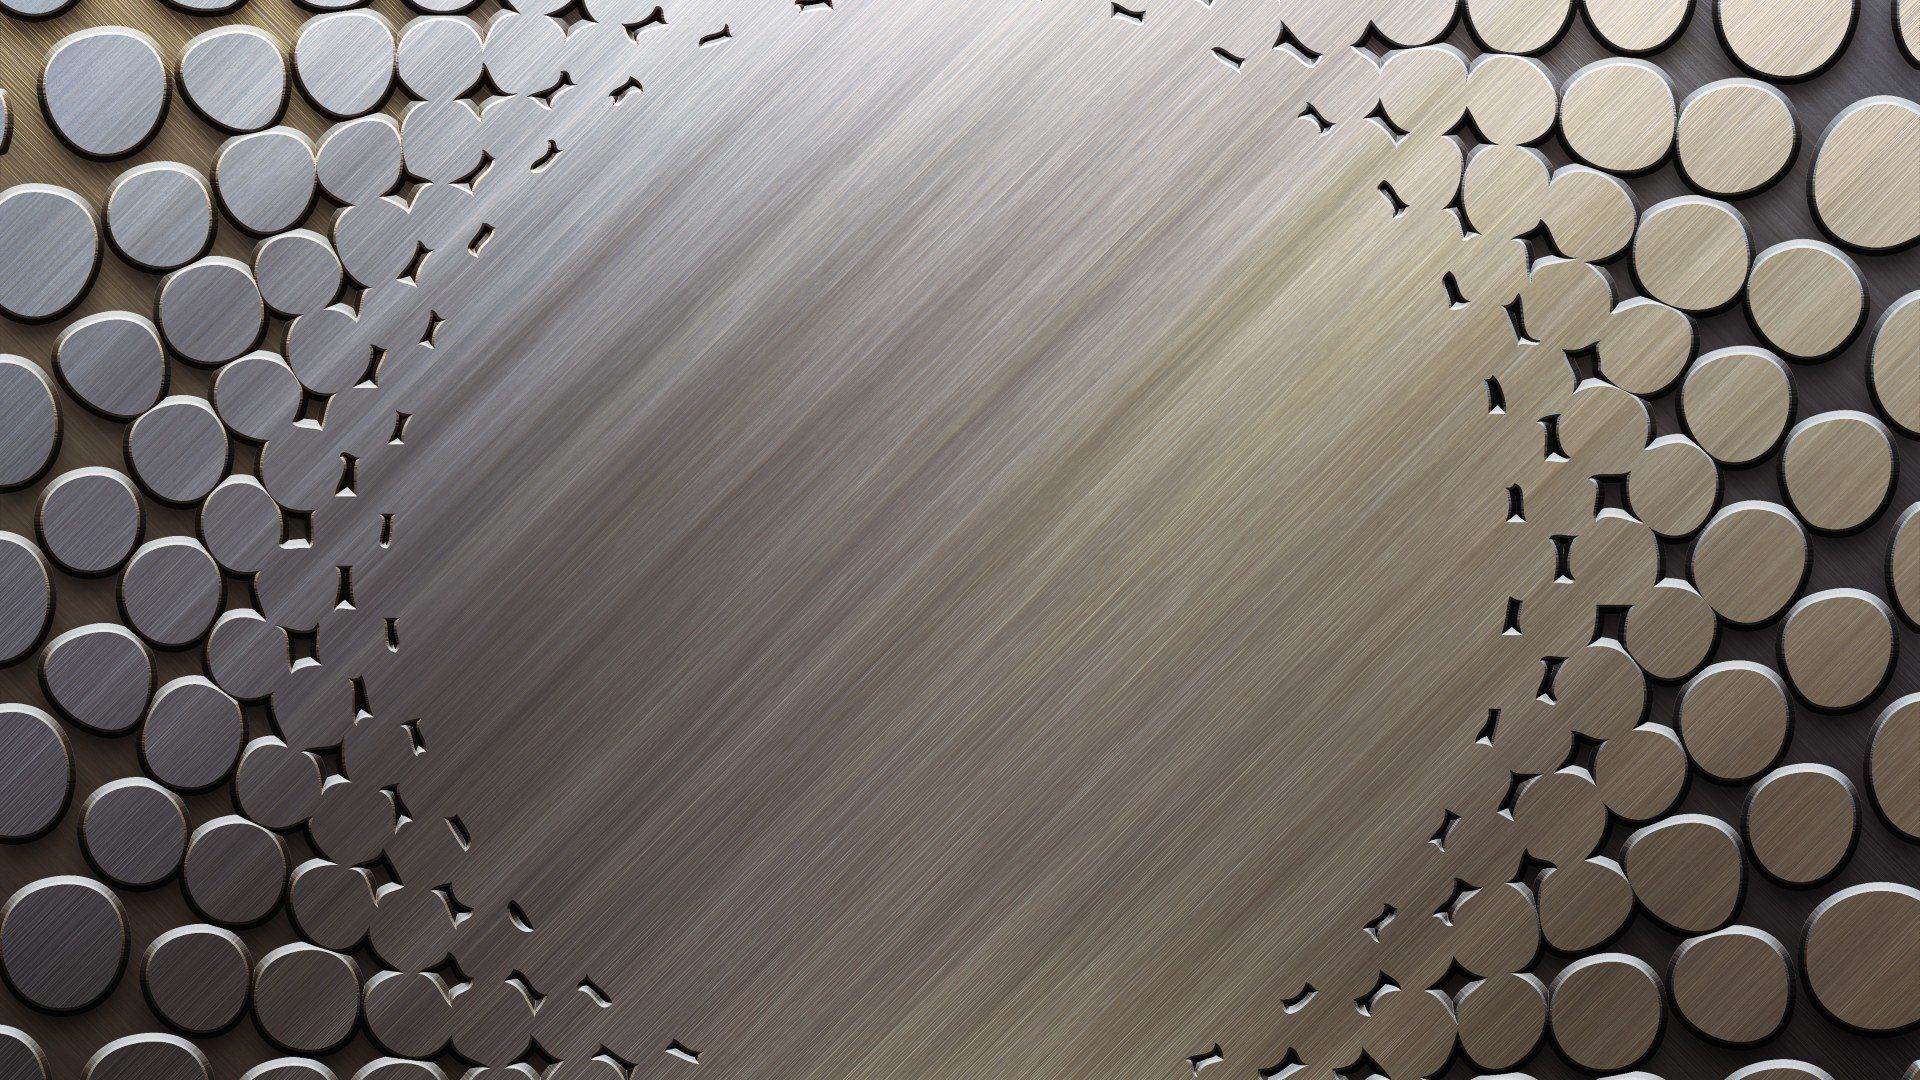 Stainless Steel Free Download Wallpaper